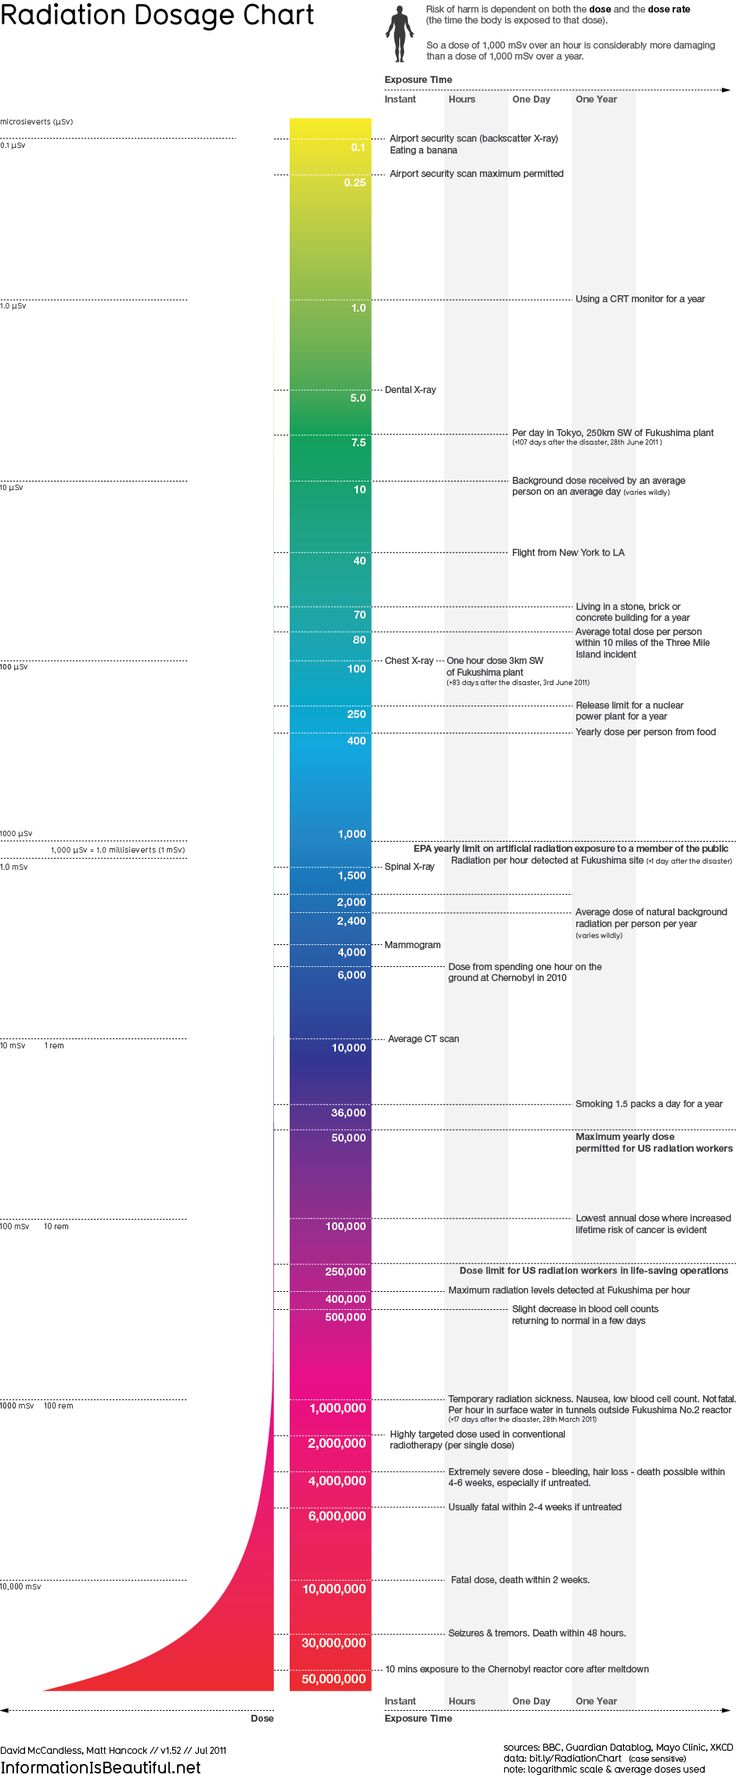 Amazing radiation dosage chart infographic - from eating a banana to Chernobyl